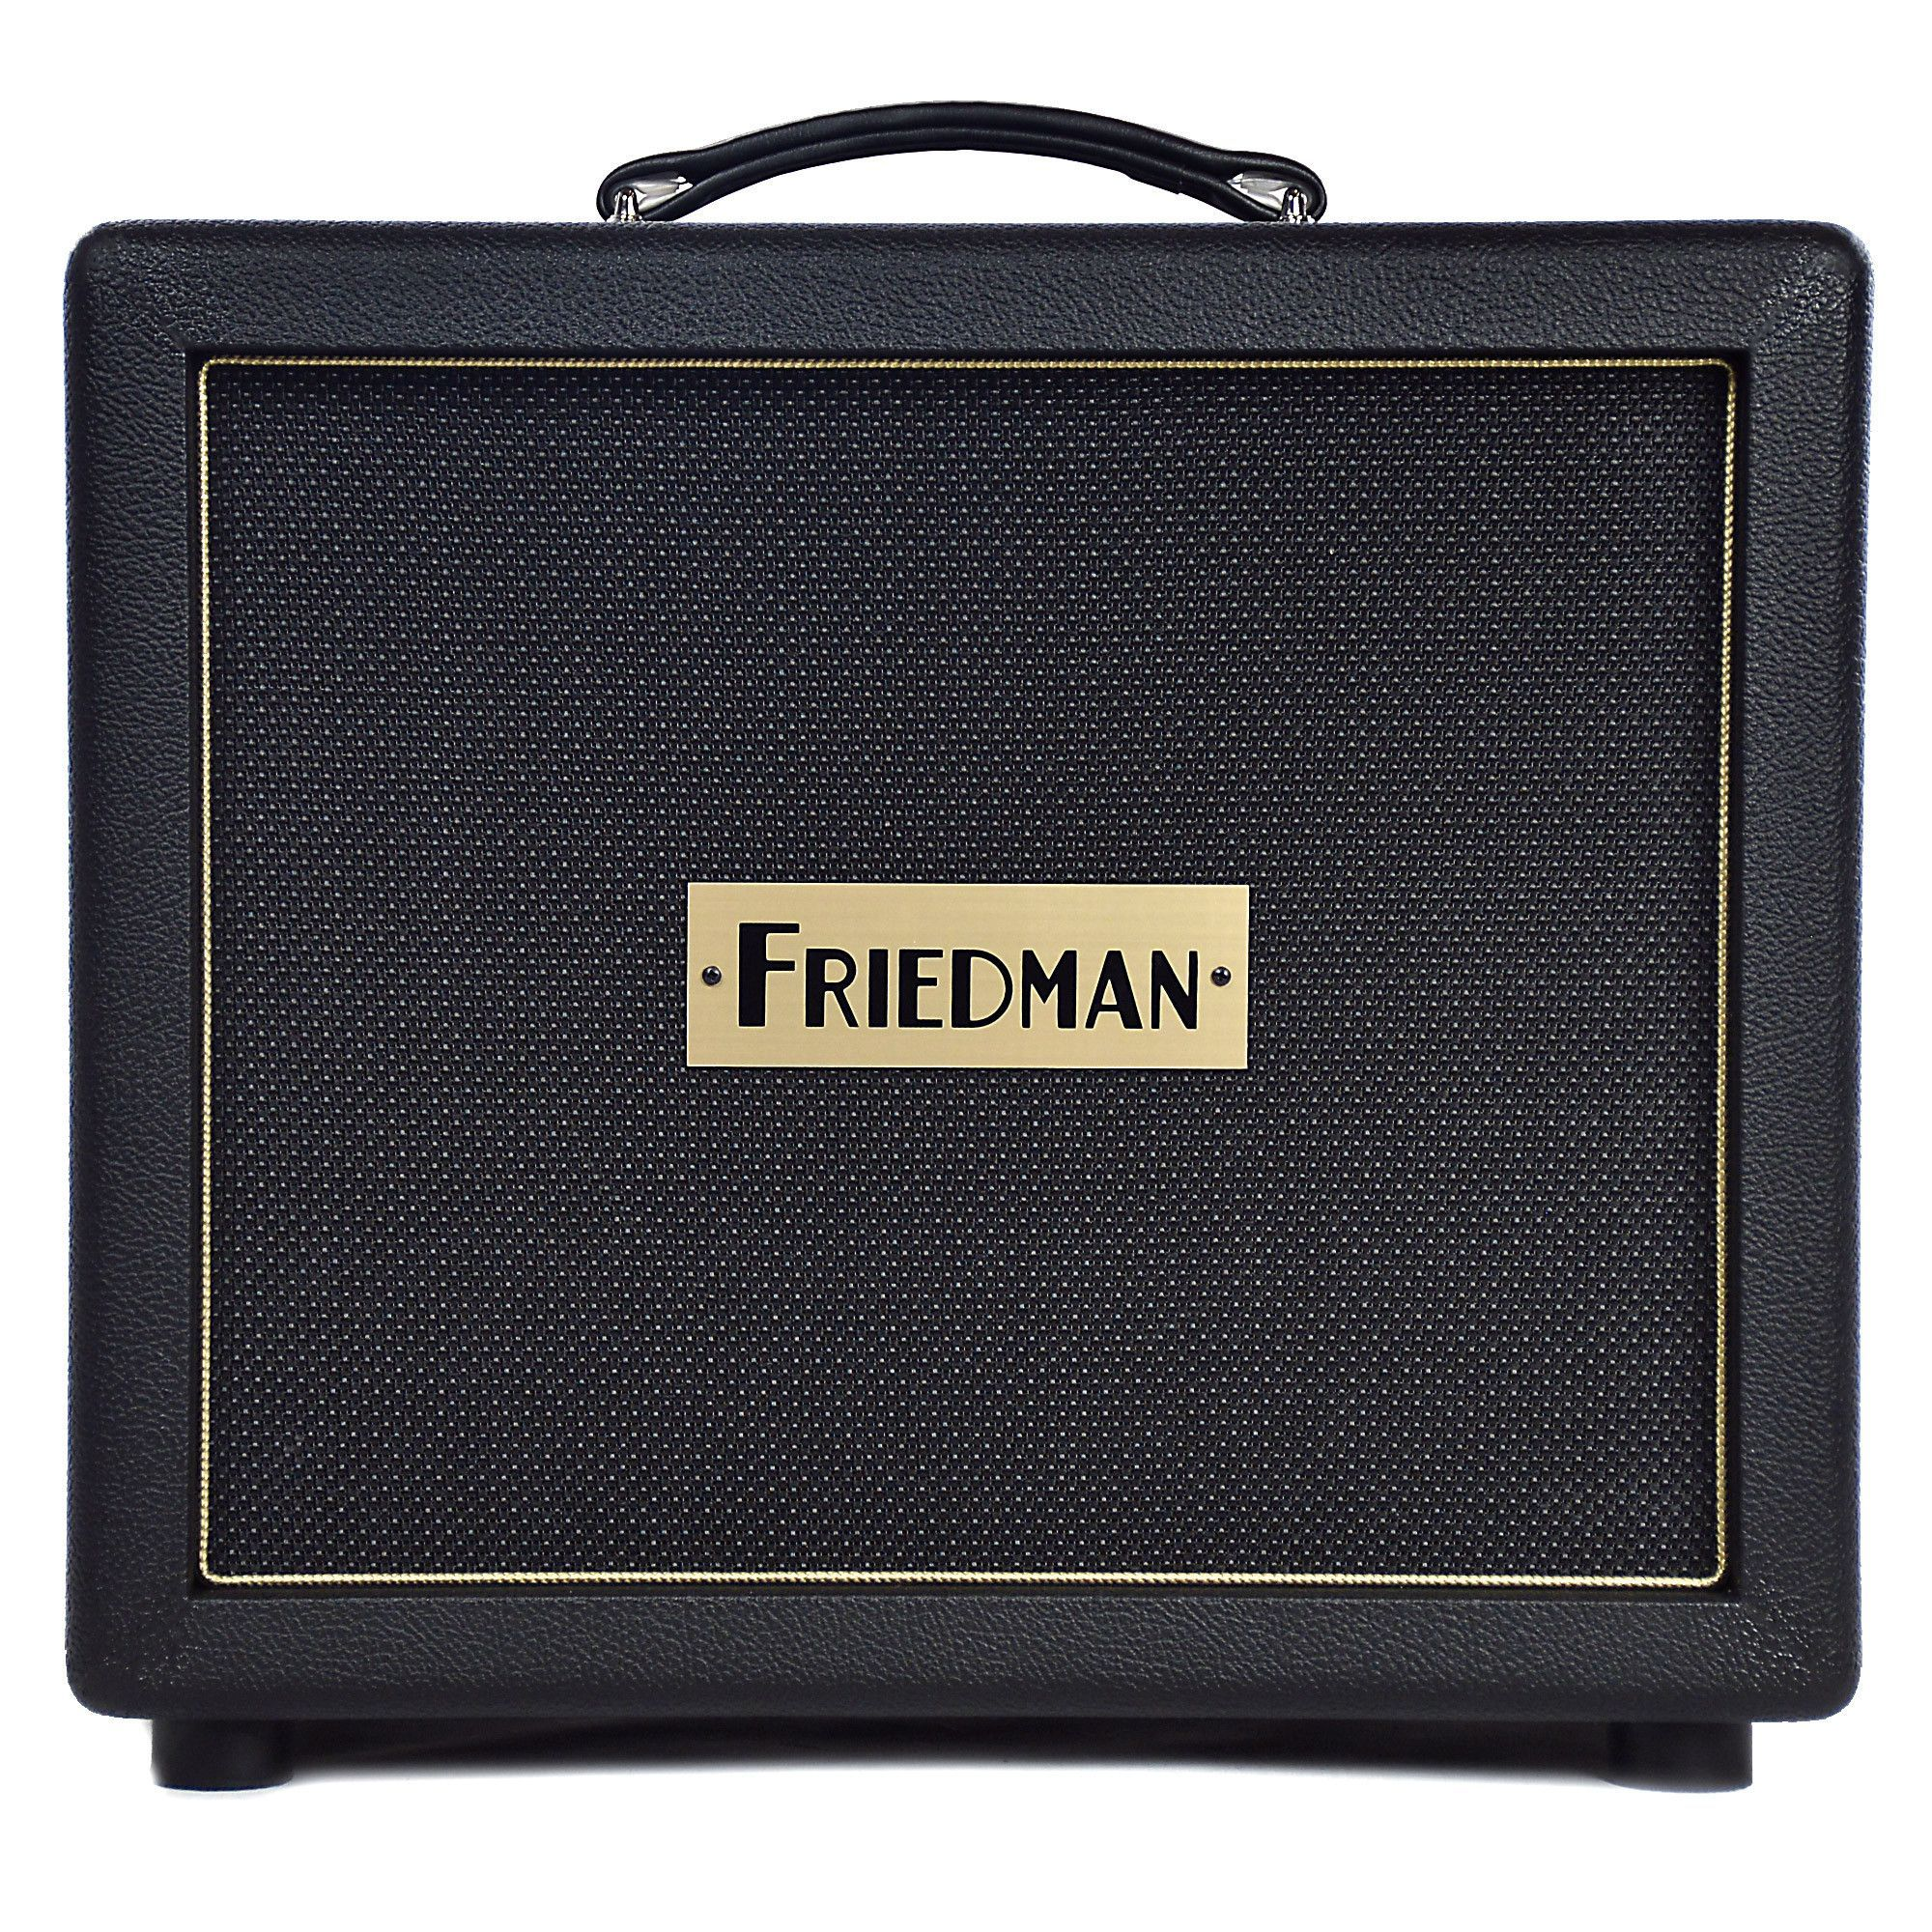 Friedman 1x12 Closed-Back Cabinet w/Celestion Creamback